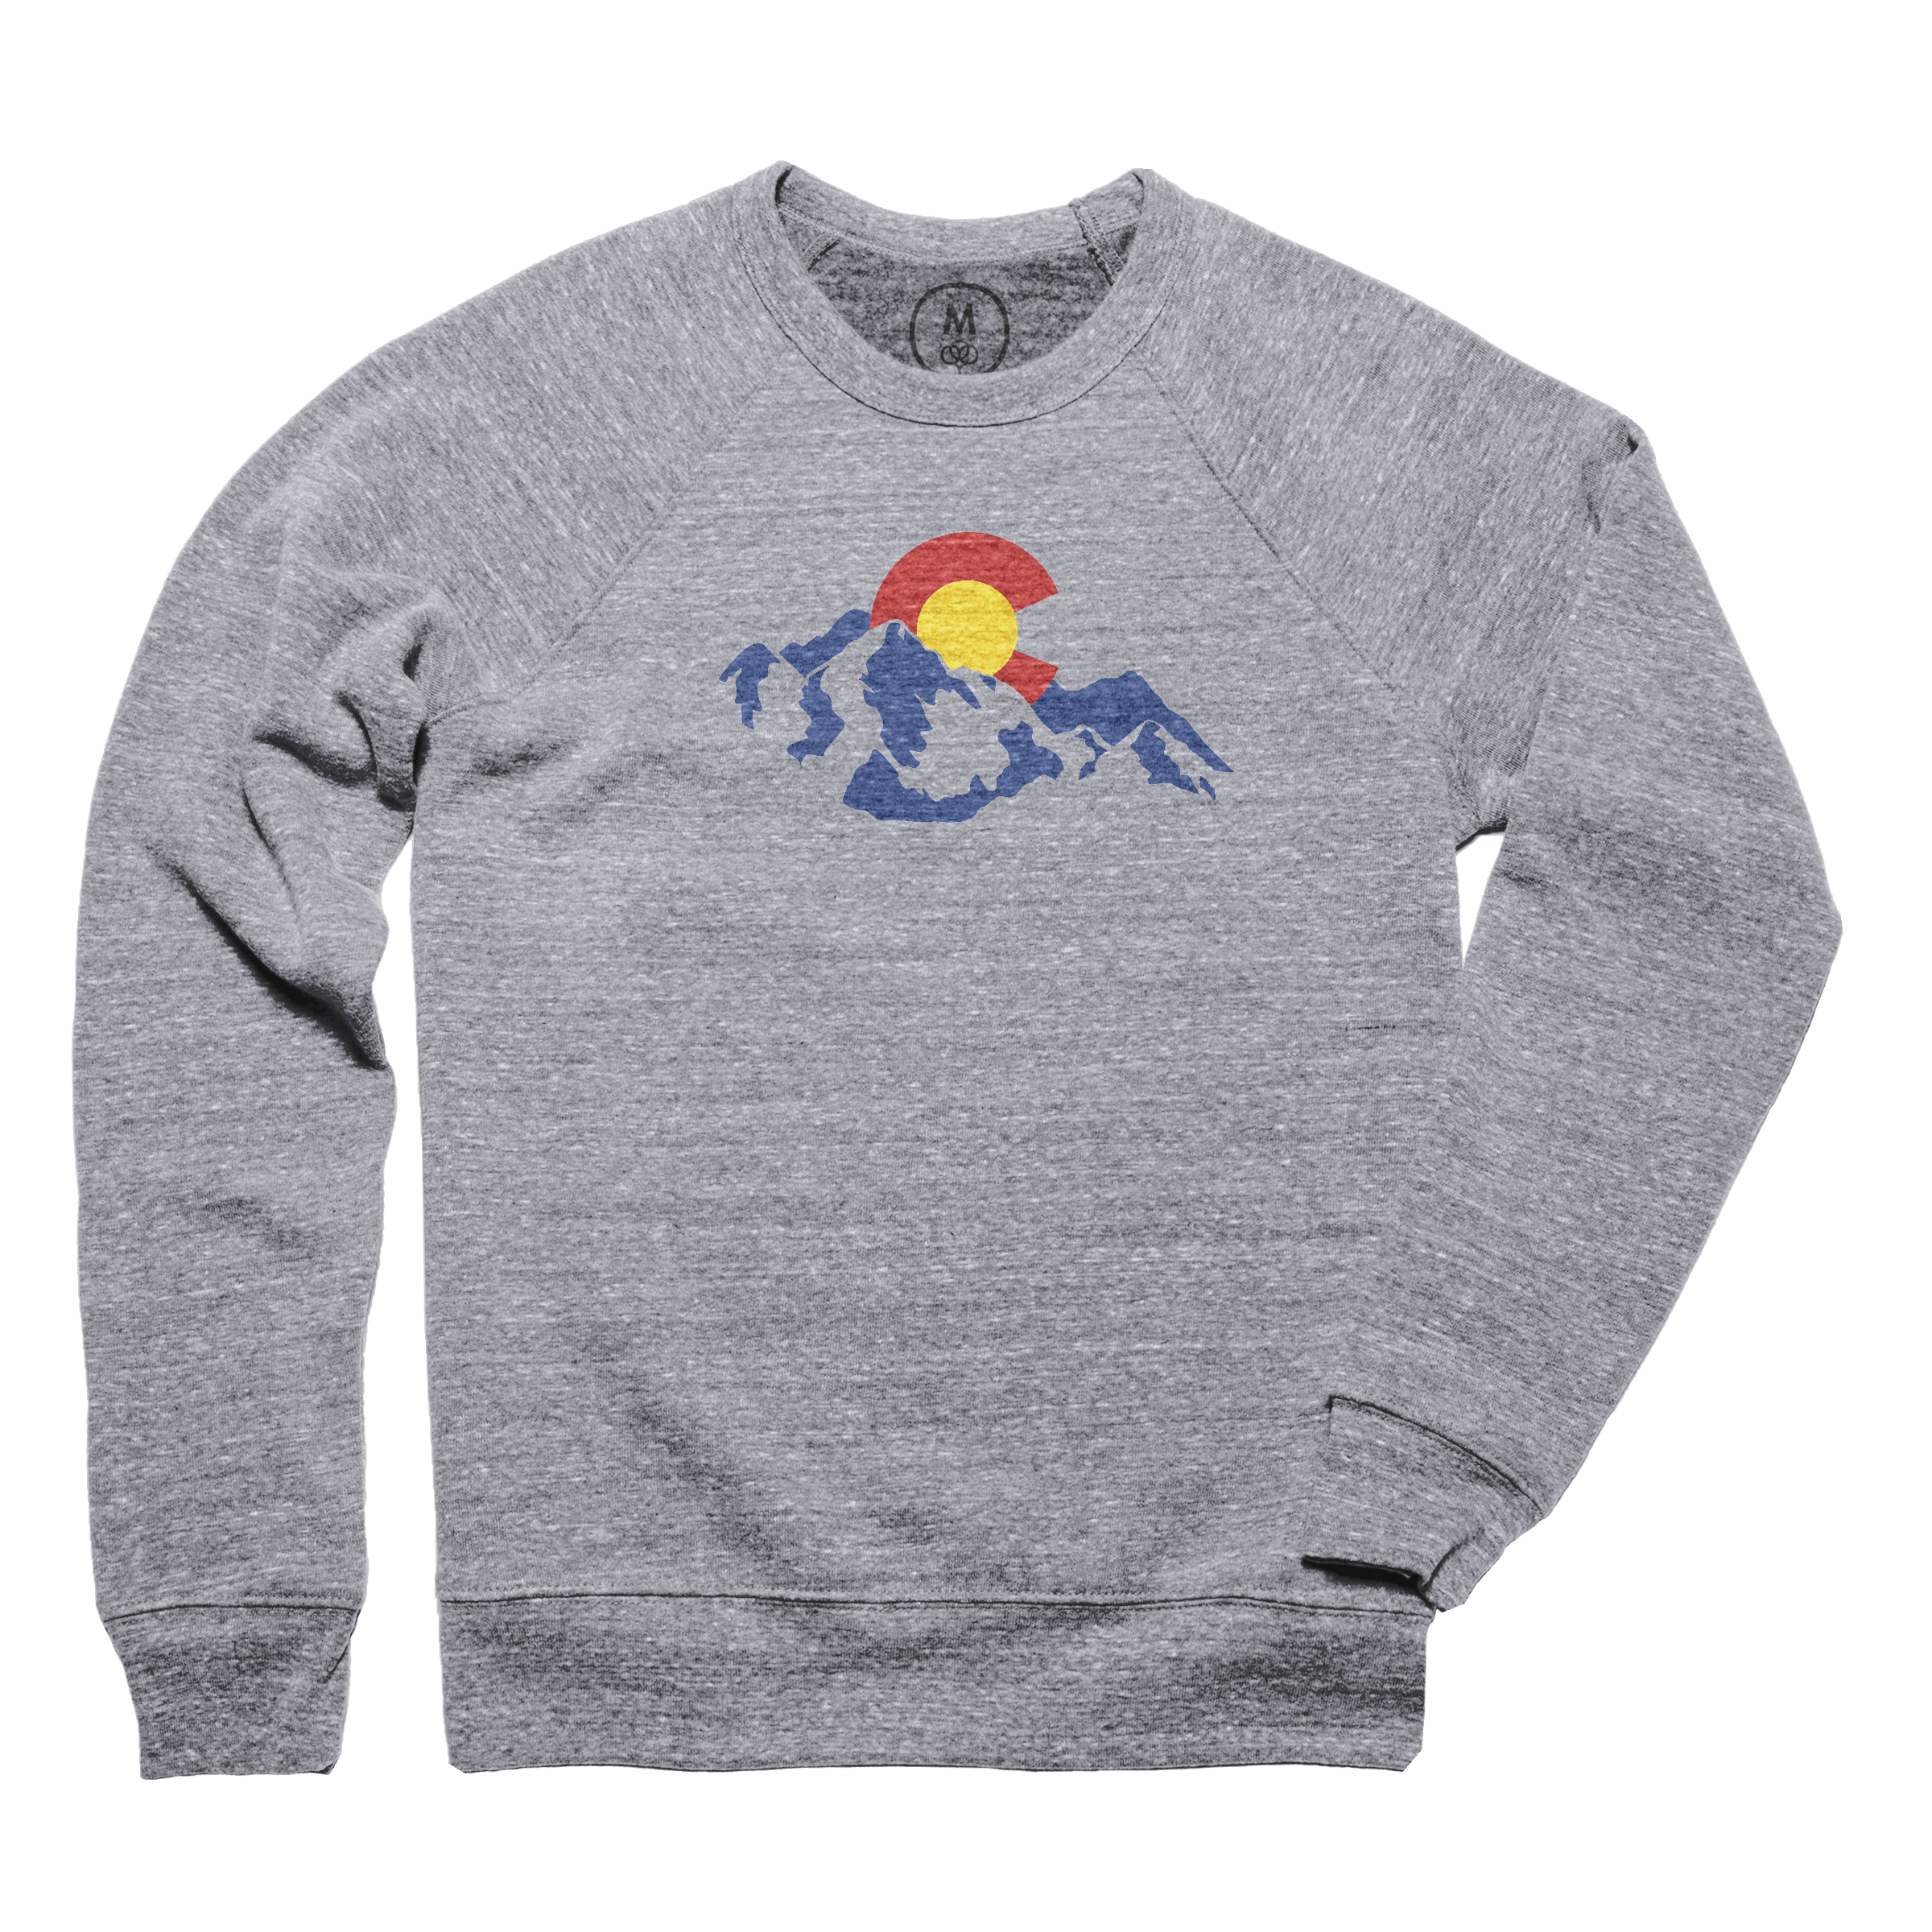 Rocky Mountain High Pullover Crewneck